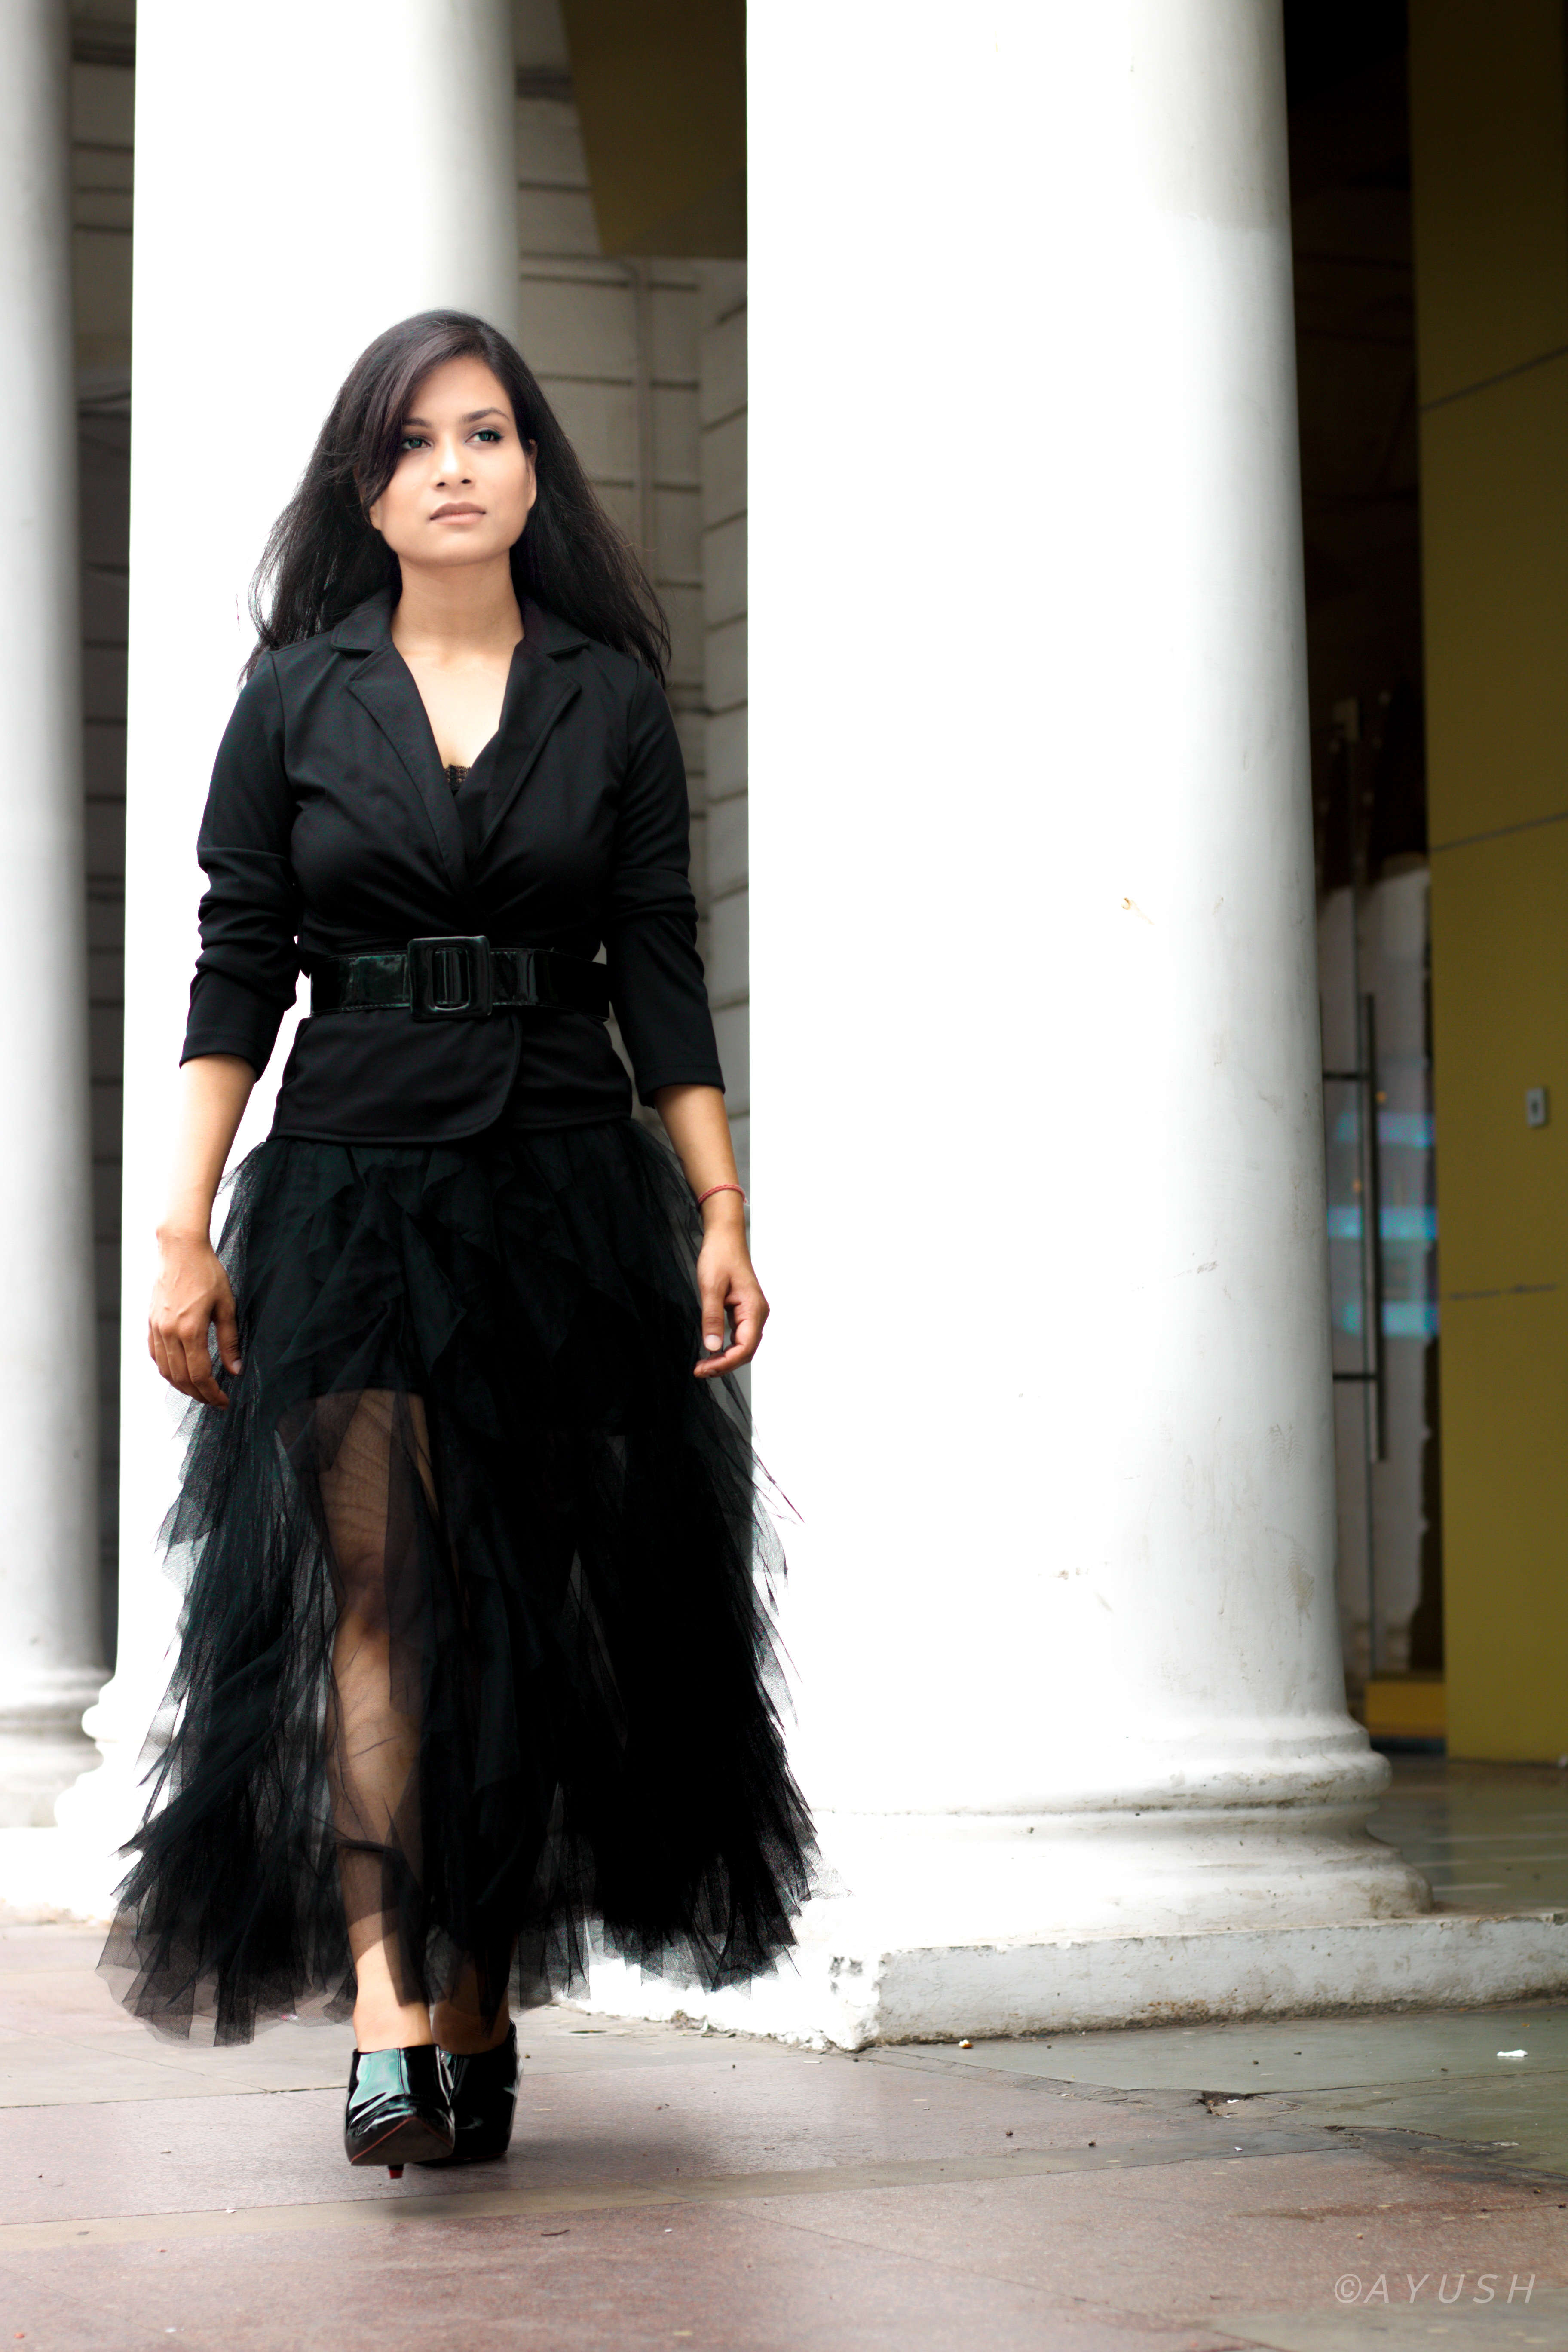 Styling the black tulle skirt with black blazer and waist belt